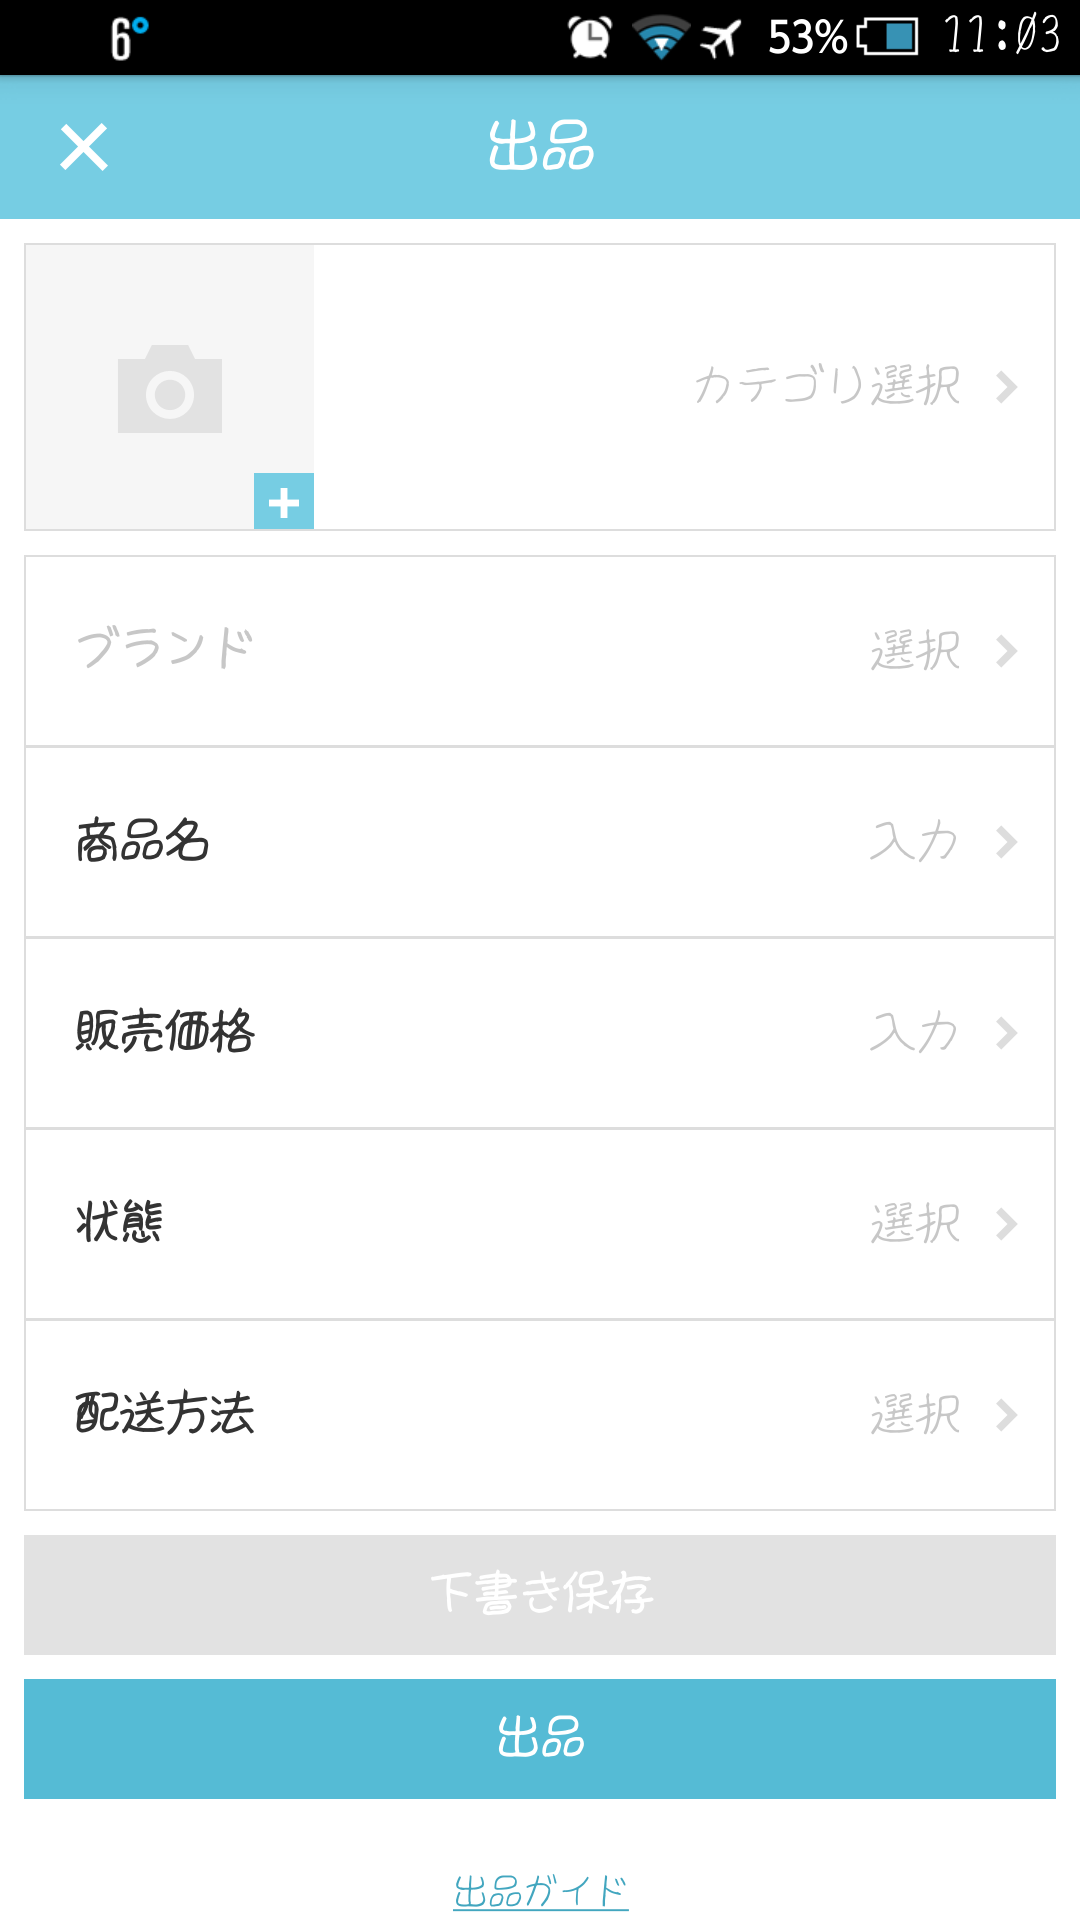 Screenshot_2014-03-16-11-03-07.png